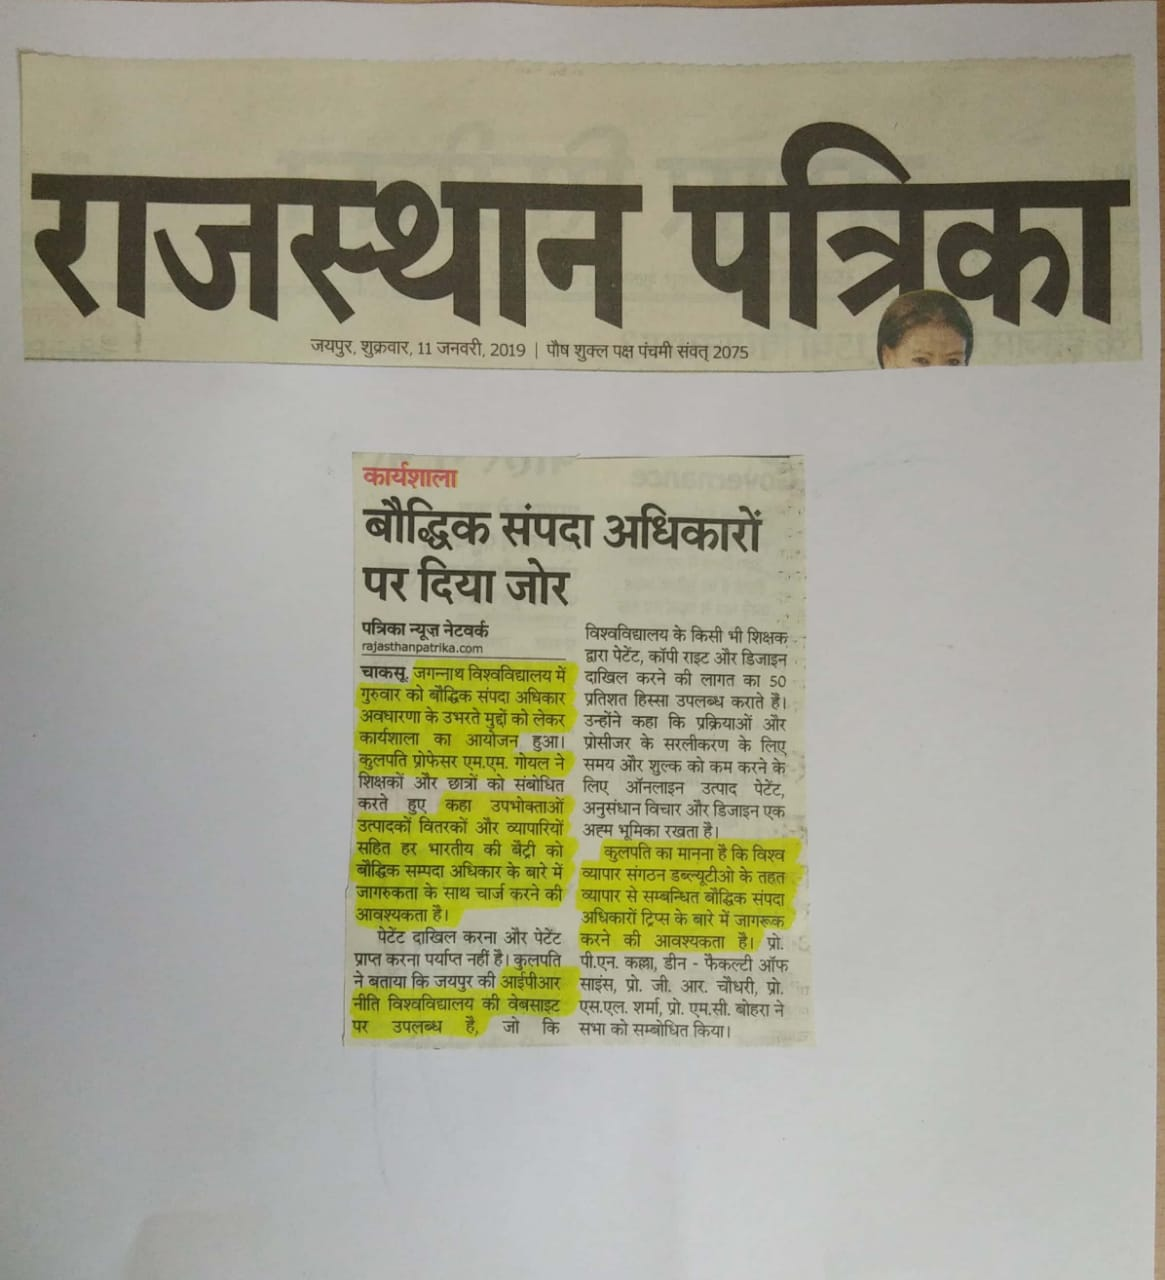 In News - Jagannath University Jaipur organizes workshop in Intellectual Property Rights.